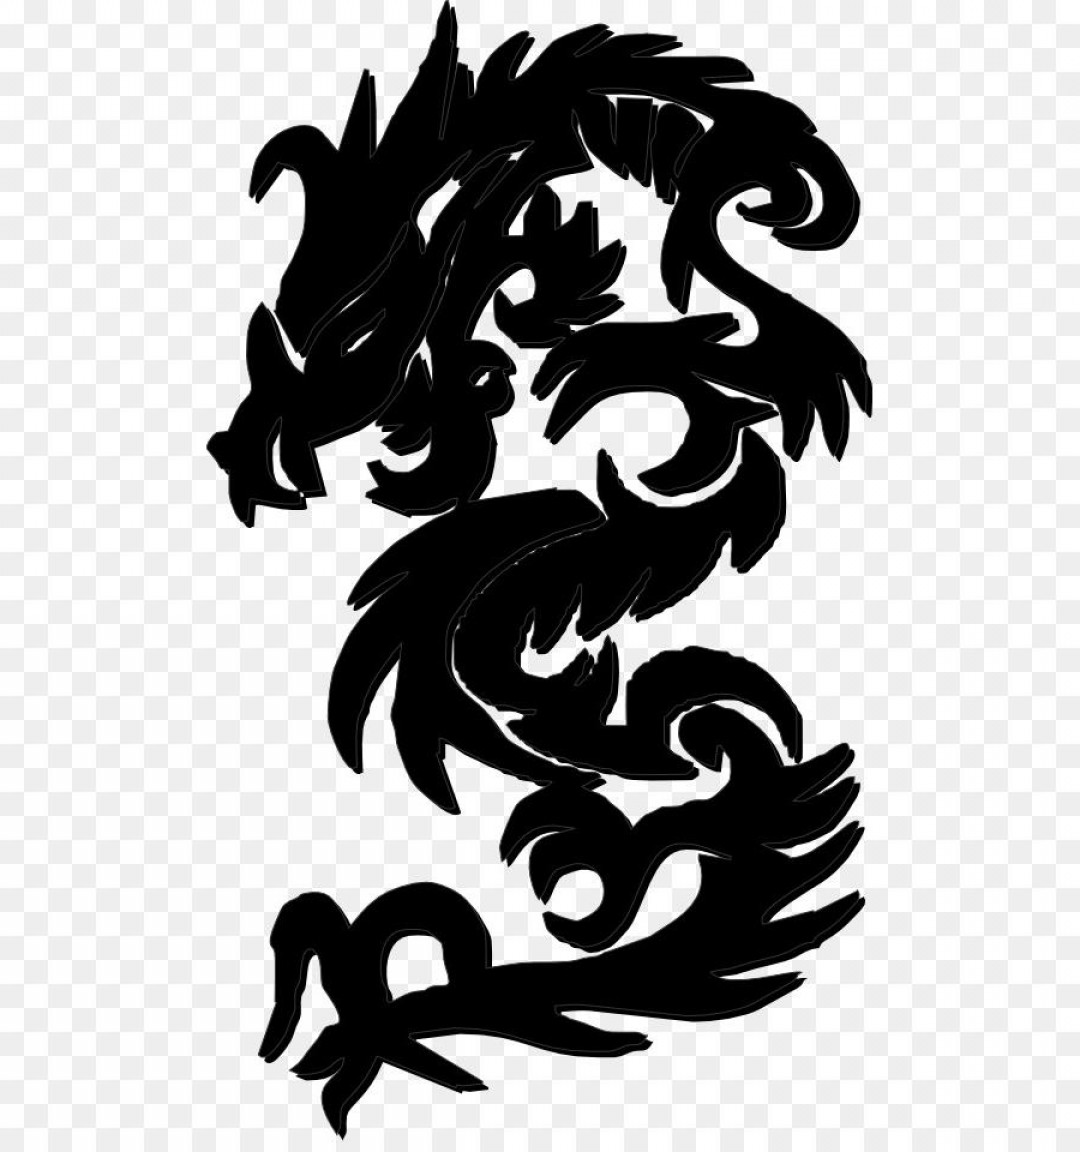 Black And White Vector Racing Graphics: Best Hd Chinese Dragon Clip Art Black And White Vector Images